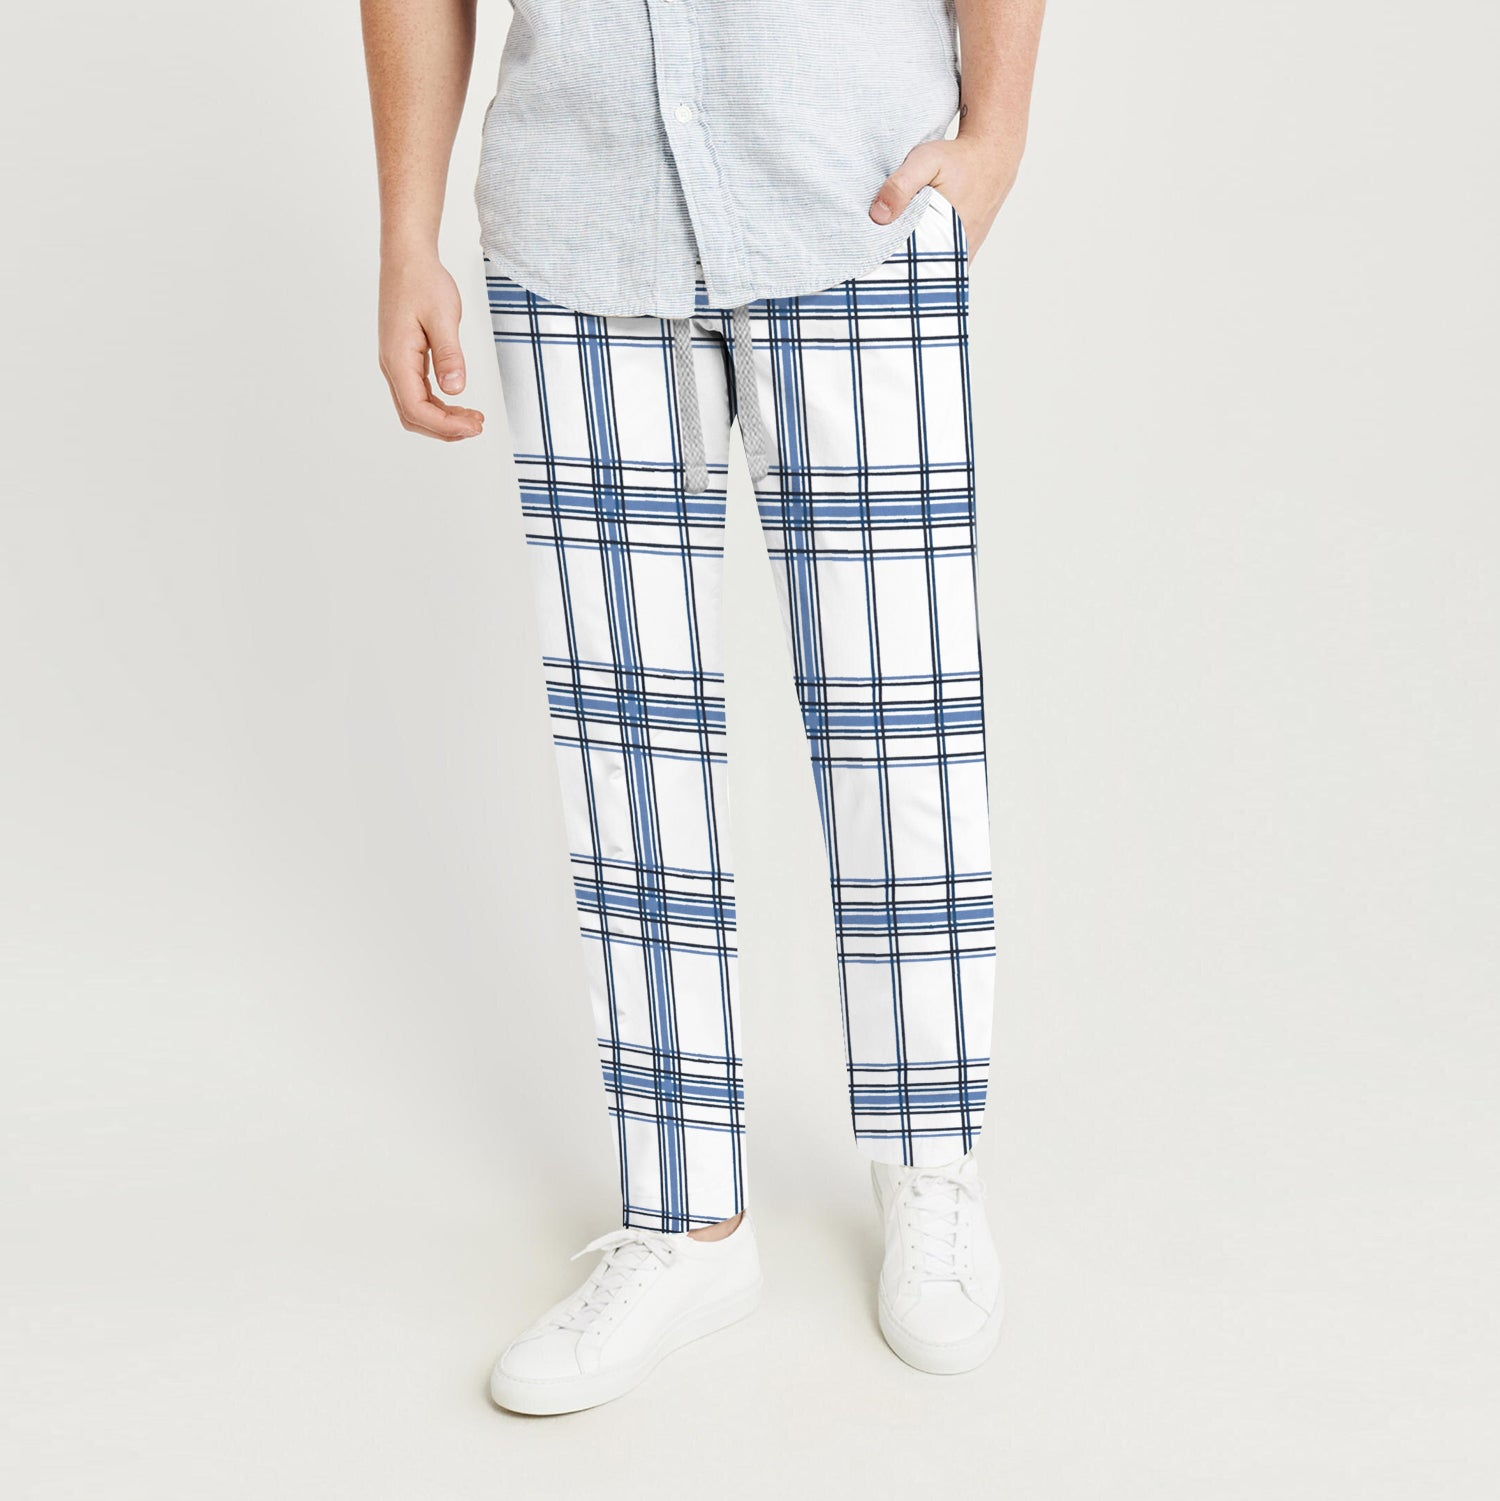 Zara Man Slim Fit Flannel Trouser For Men-White with Navy Lining-BE9803